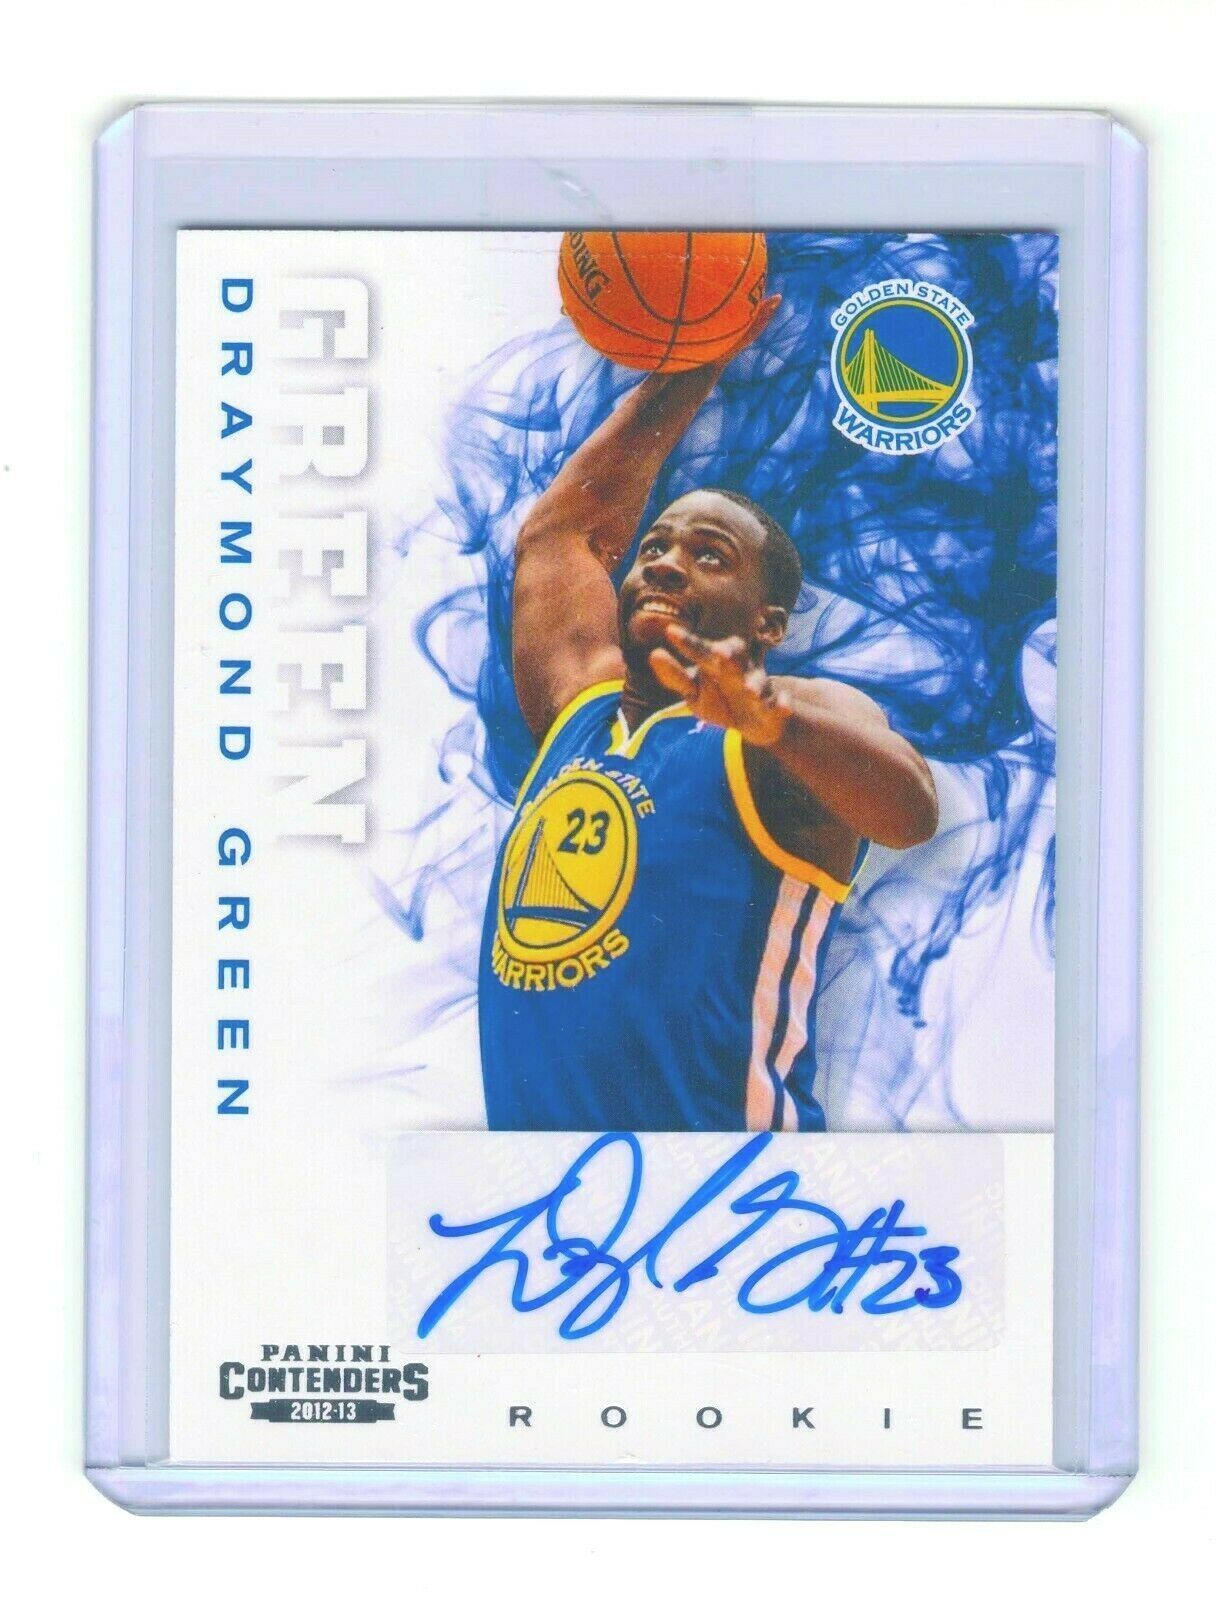 Primary image for 2012-13 Panini Contenders ROOKIE AUTO DRAYMOND GREEN Warriors RC